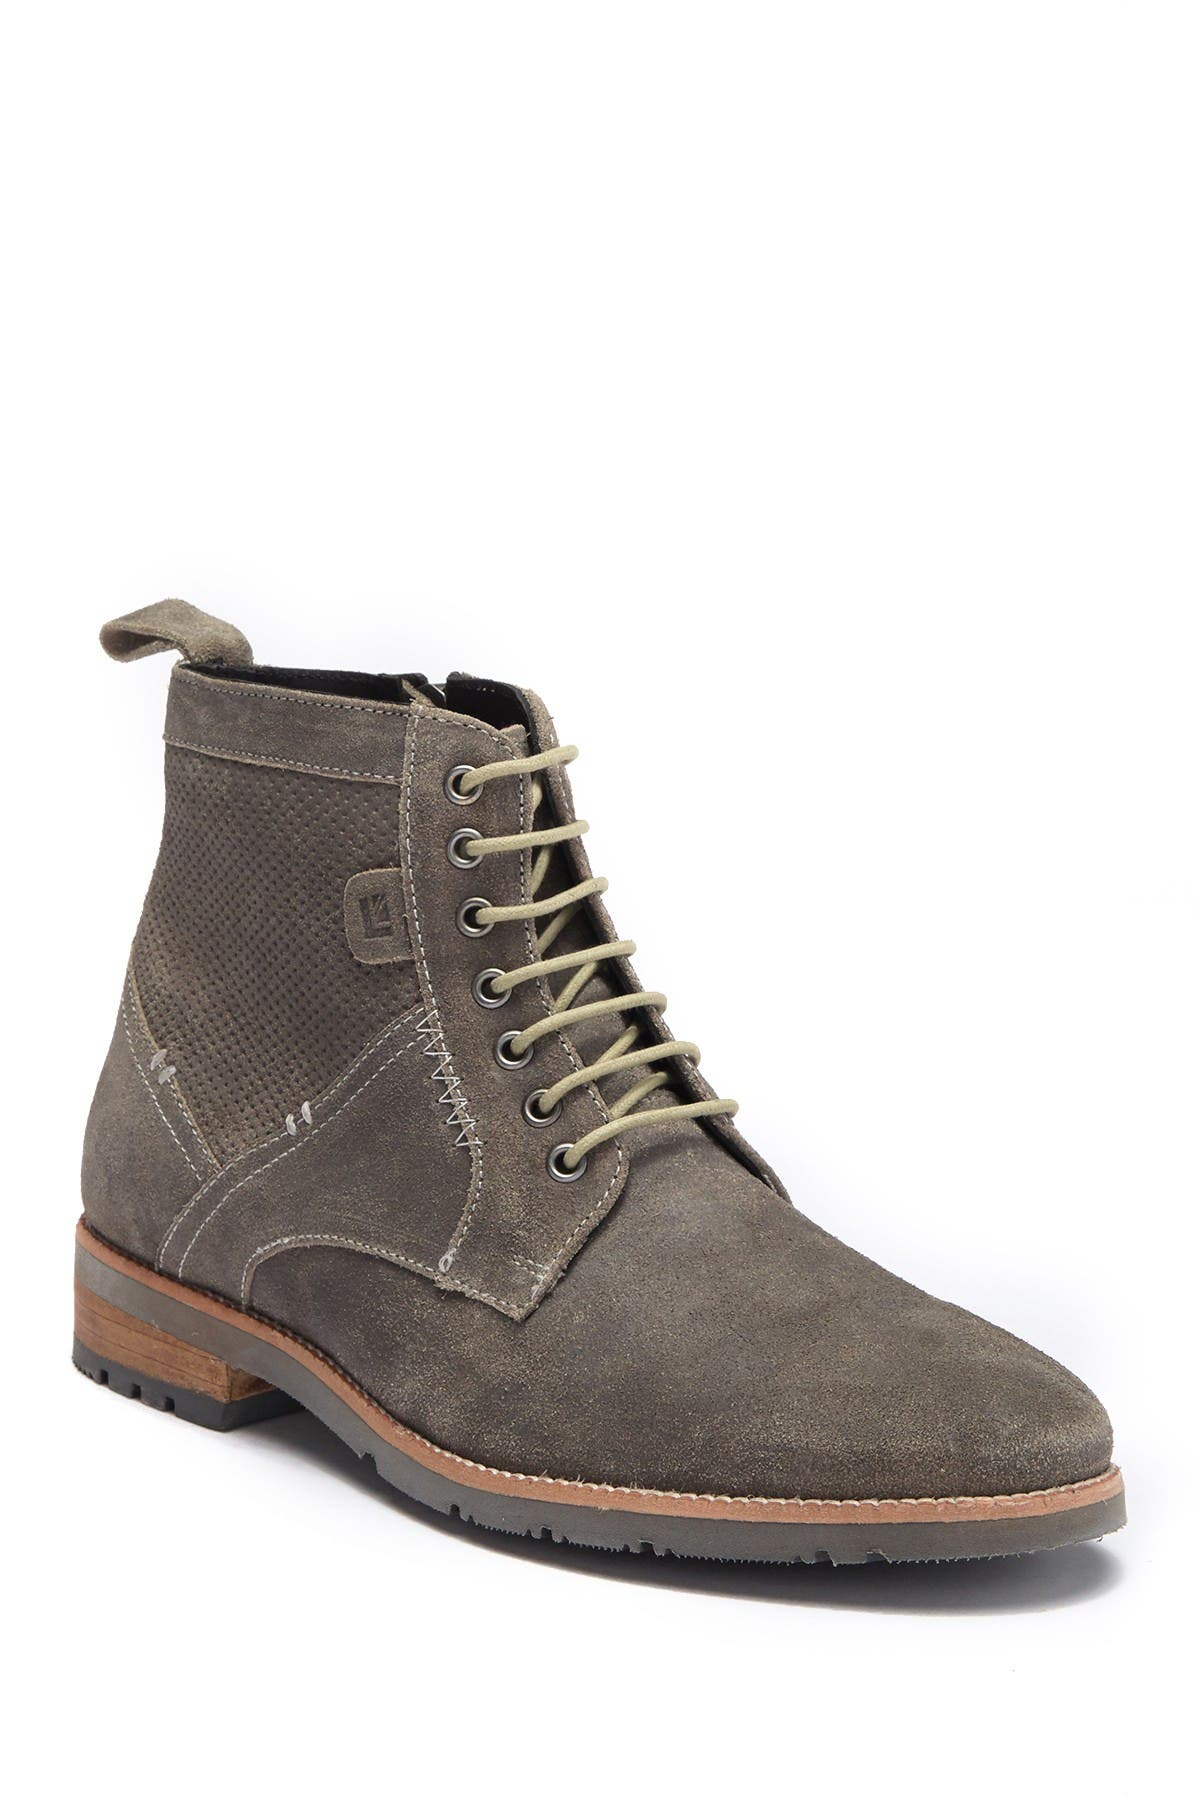 Image of Ben Sherman Rugged Perf Distressed Northern Suede Boot